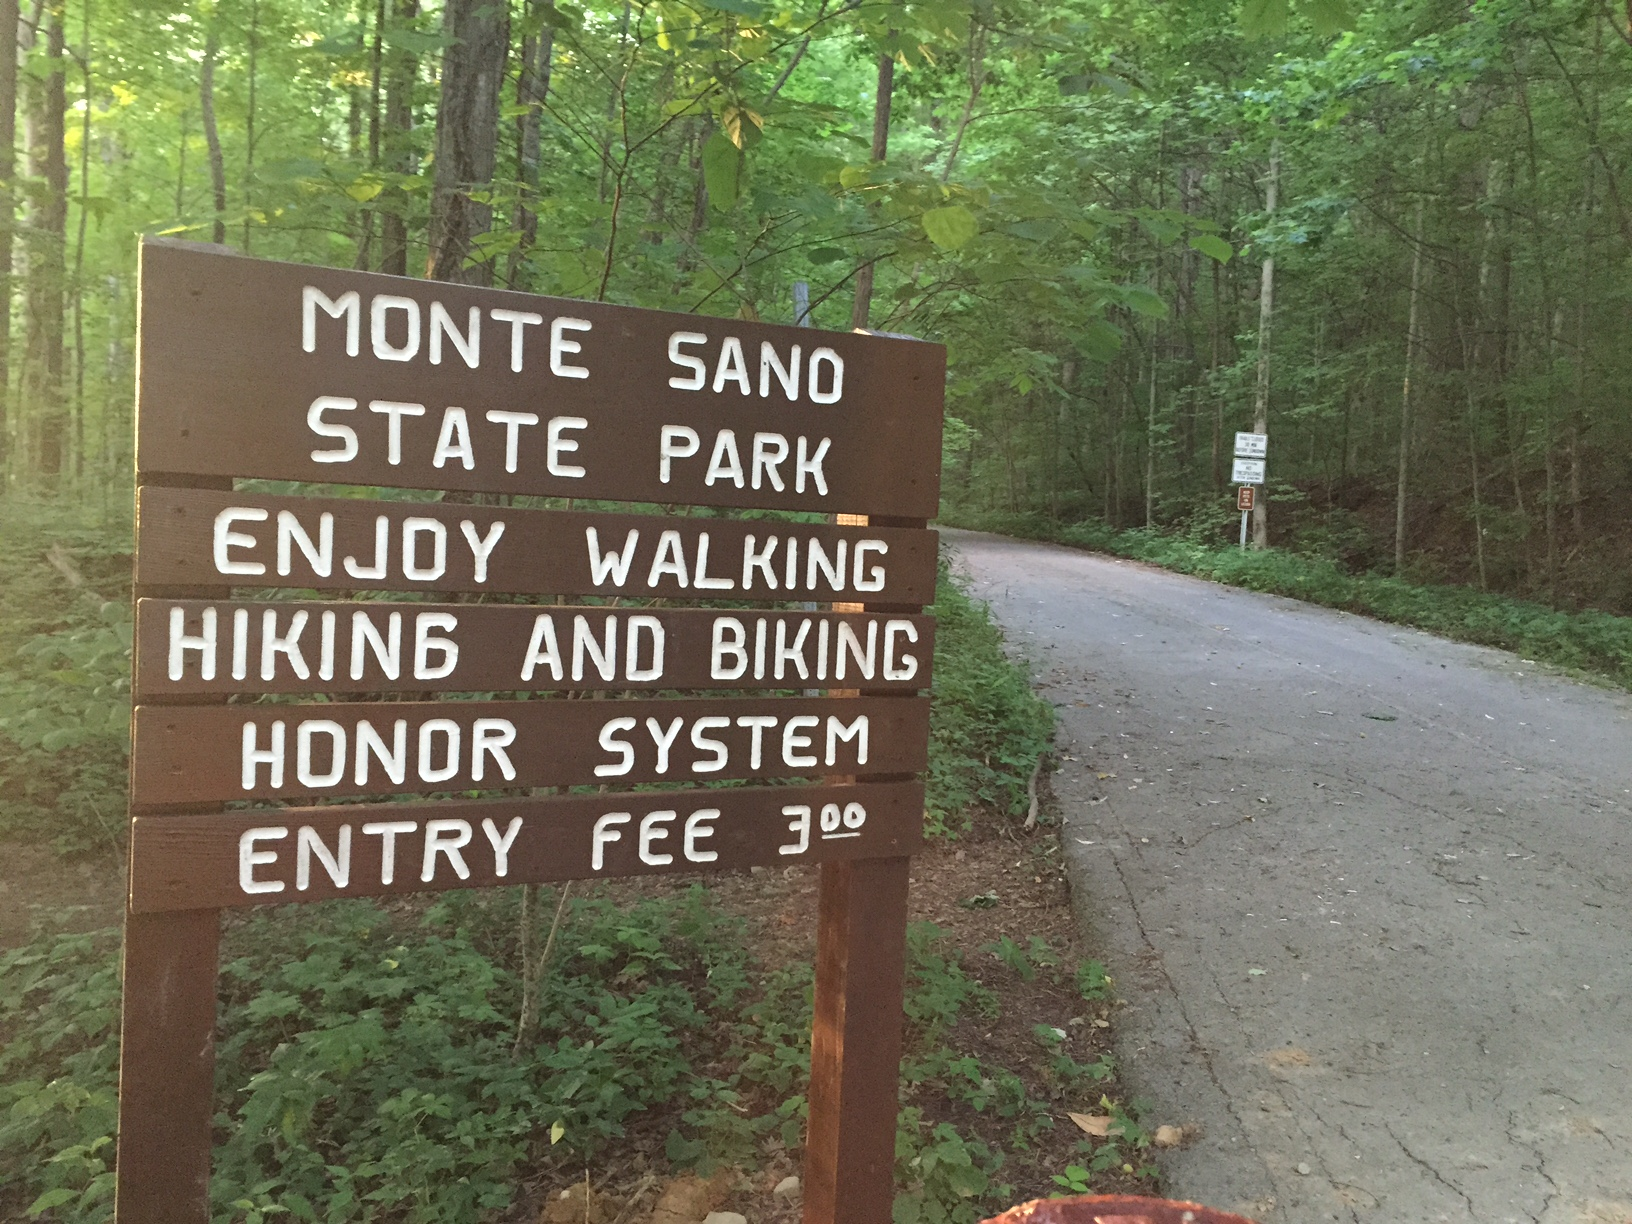 20 miles of hiking trails and 14 miles of biking trails can be found here in Monte Sano State Park.